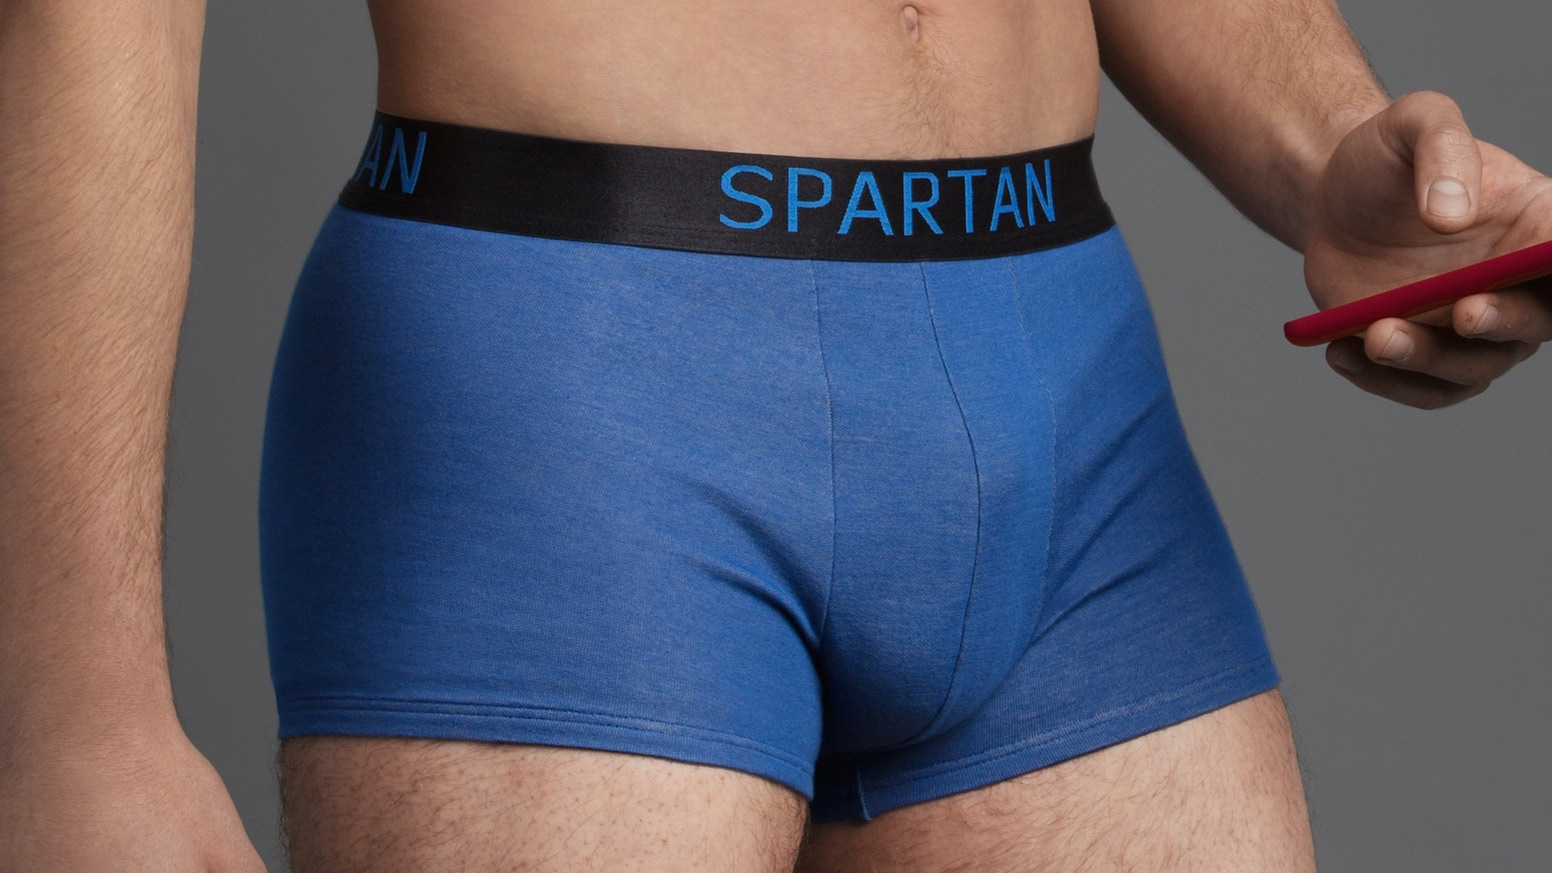 SPARTAN is a stylish high-tech boxer that protects your manhood by blocking cellphone and Wi-Fi radiation. Got some? Protect them!